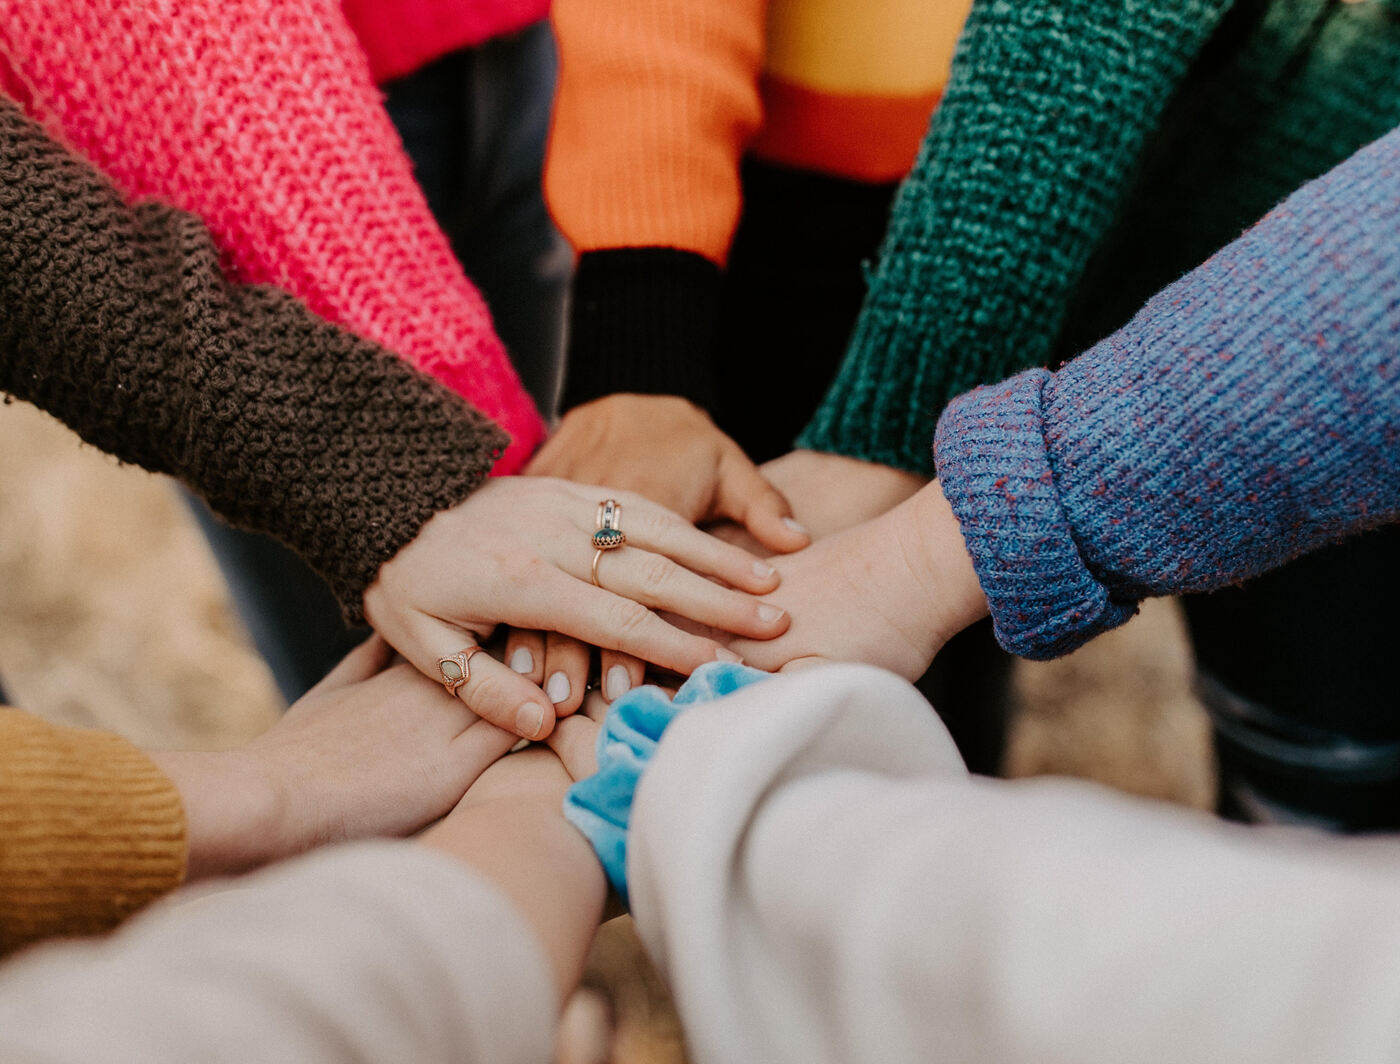 support circle of women hands on top of each other in solidarity